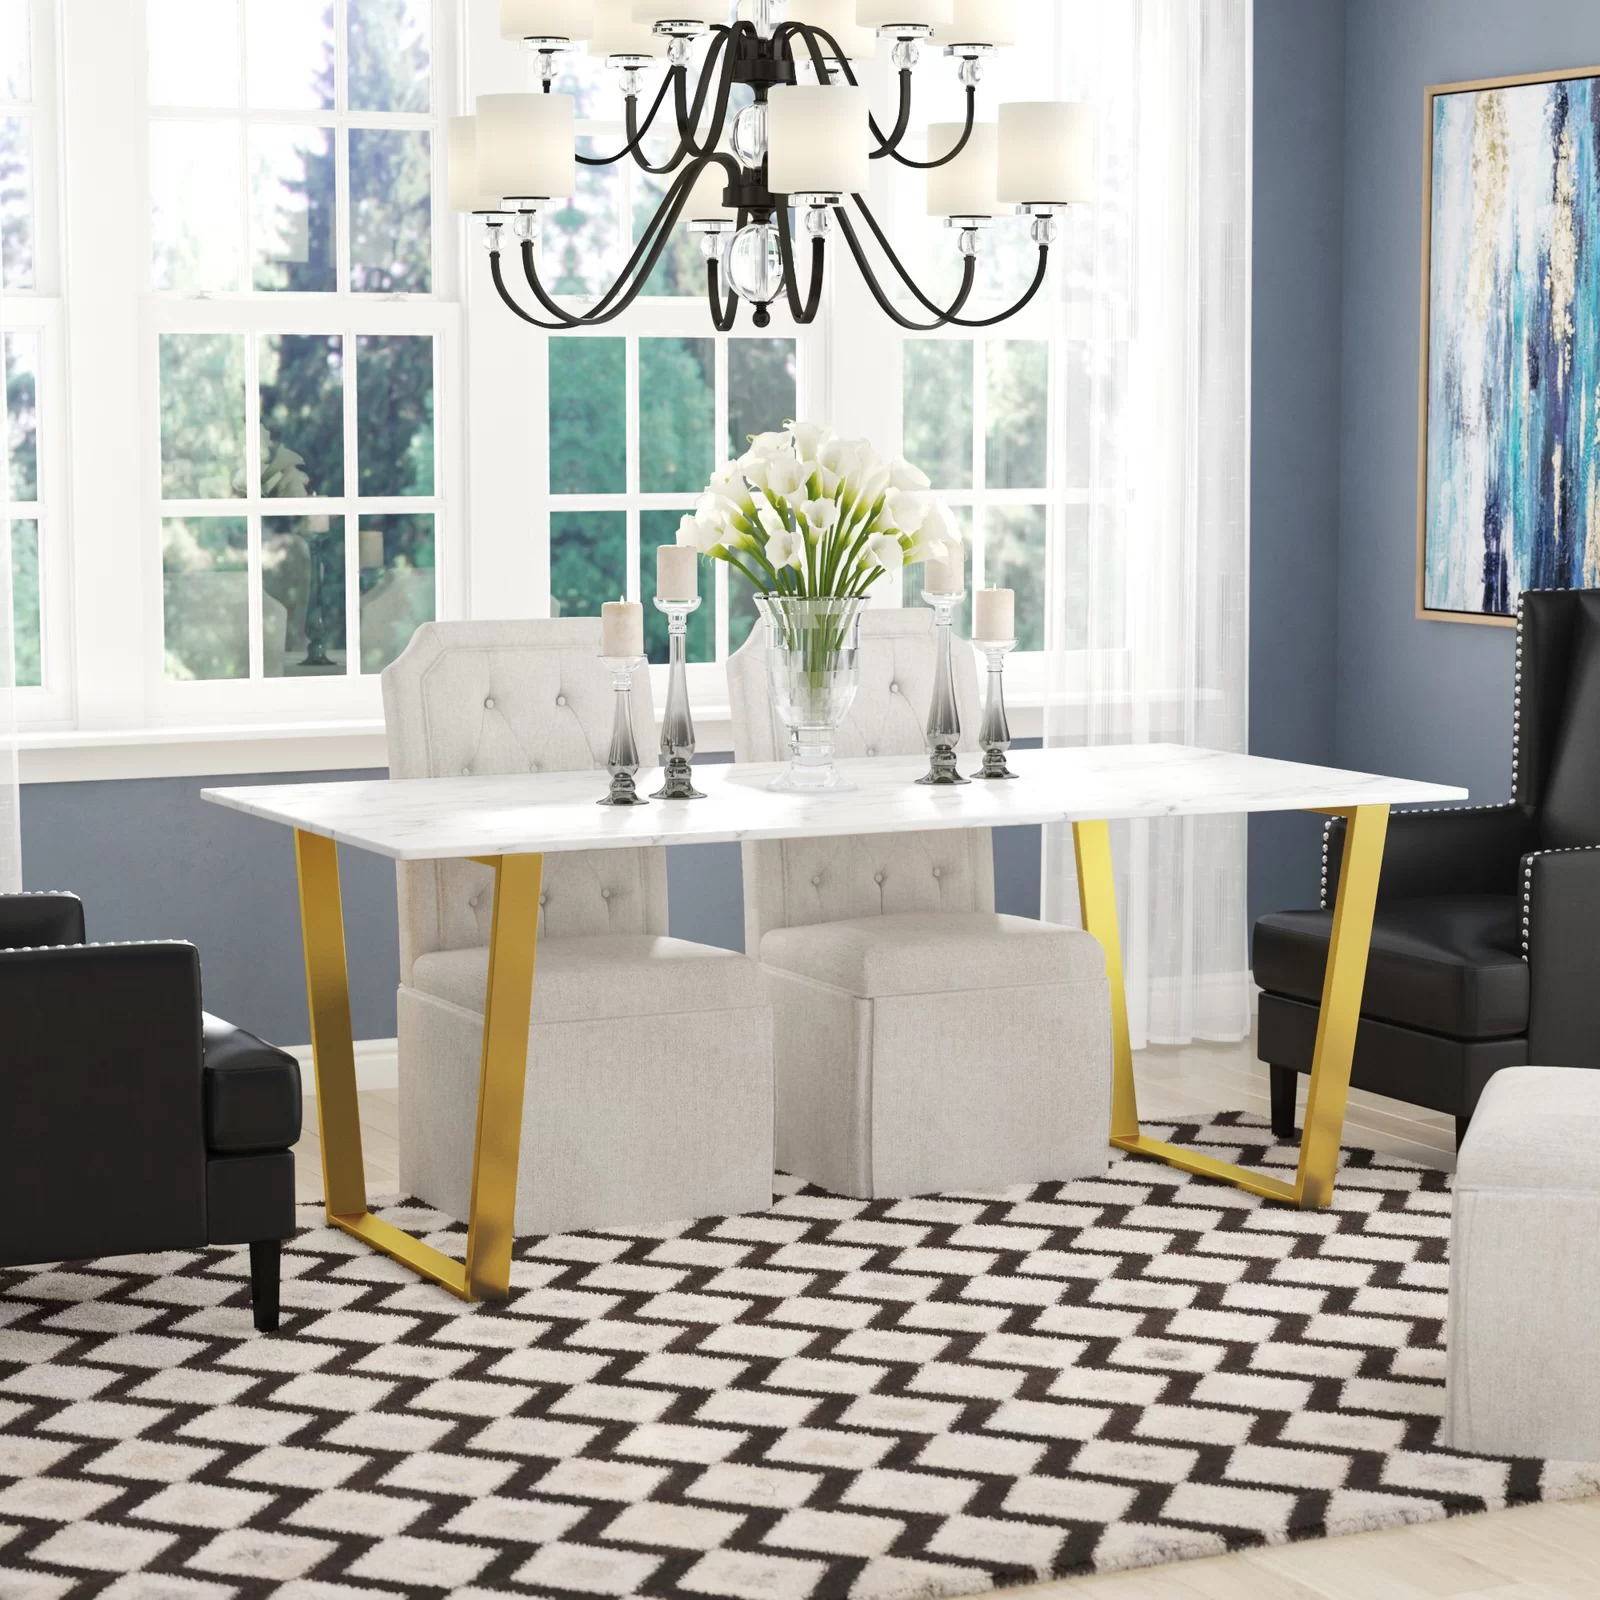 Best And Newest Dining Tables With White Marble Top Intended For Thompson Rectangular White Marble Top And Golden Steel Dining Table (Gallery 7 of 30)